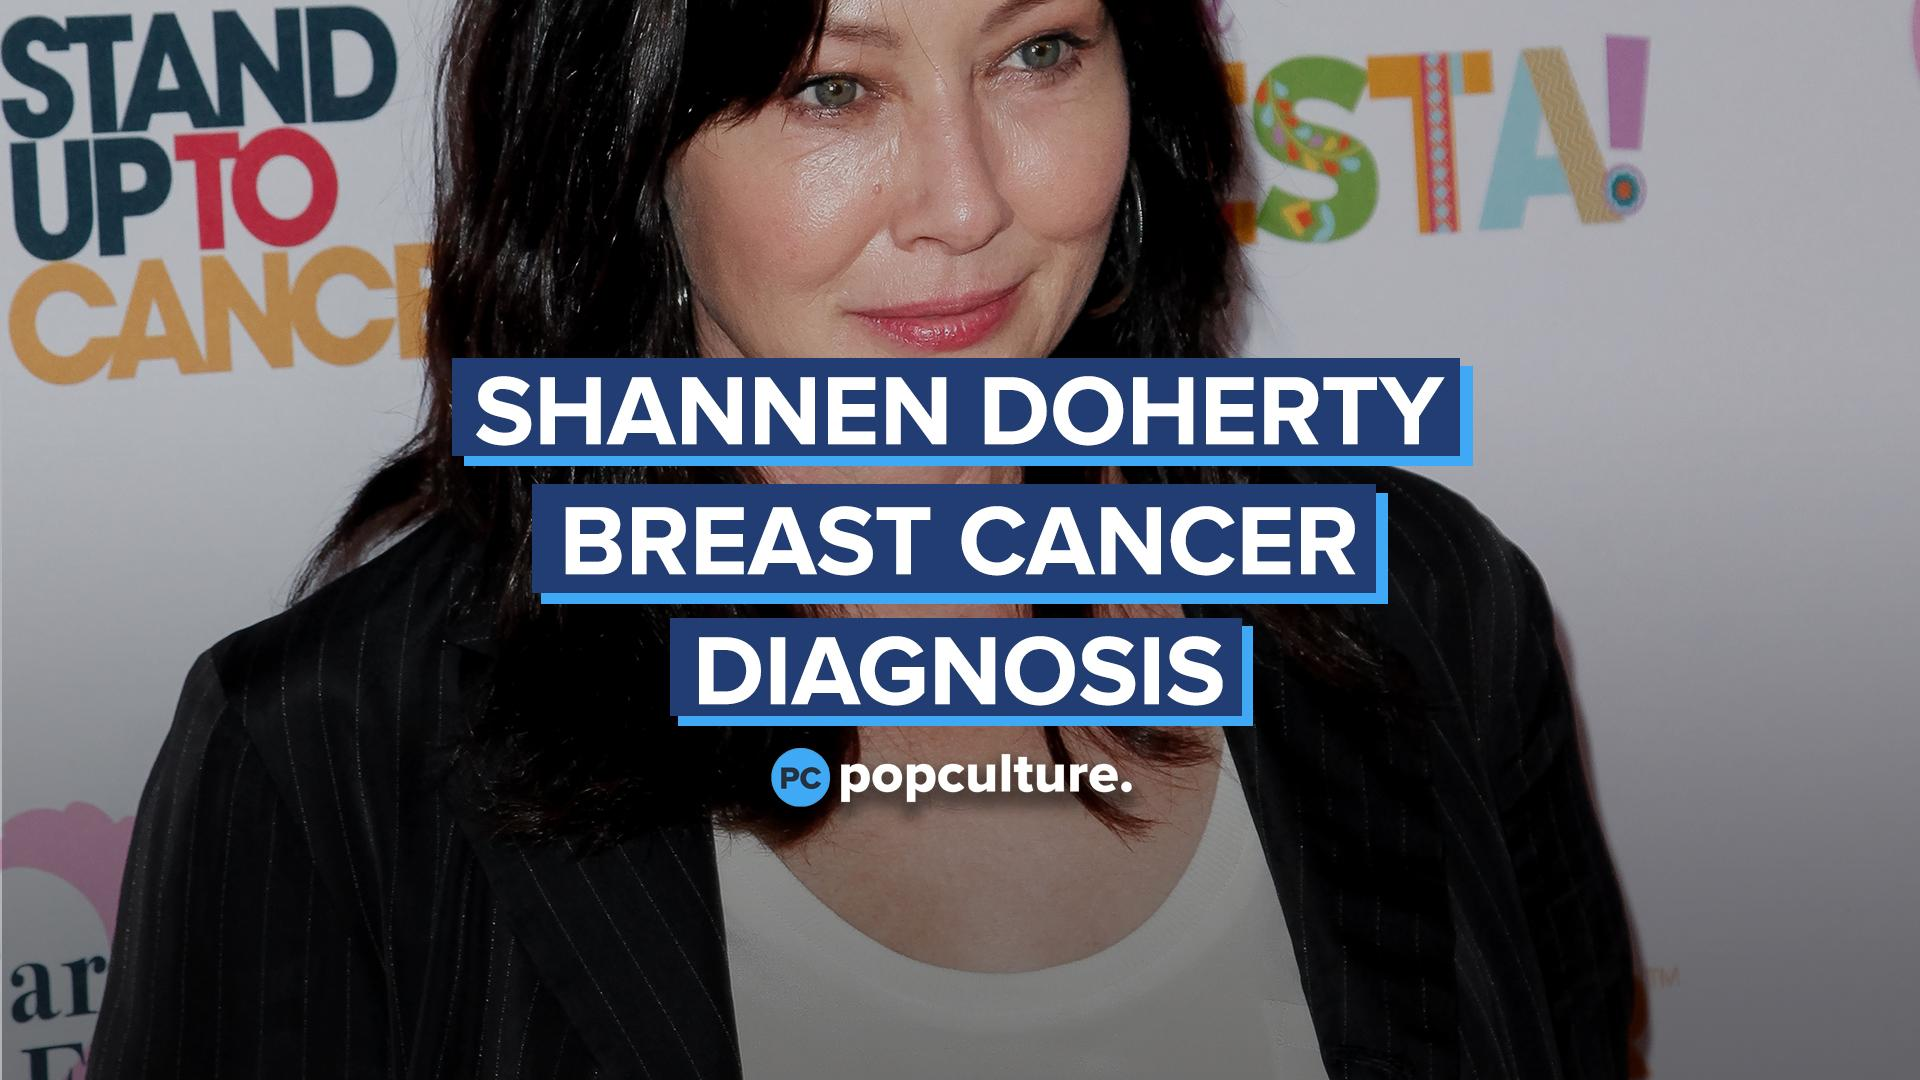 Shannen Doherty Reveals Stage 4 Breast Cancer Diagnosis screen capture